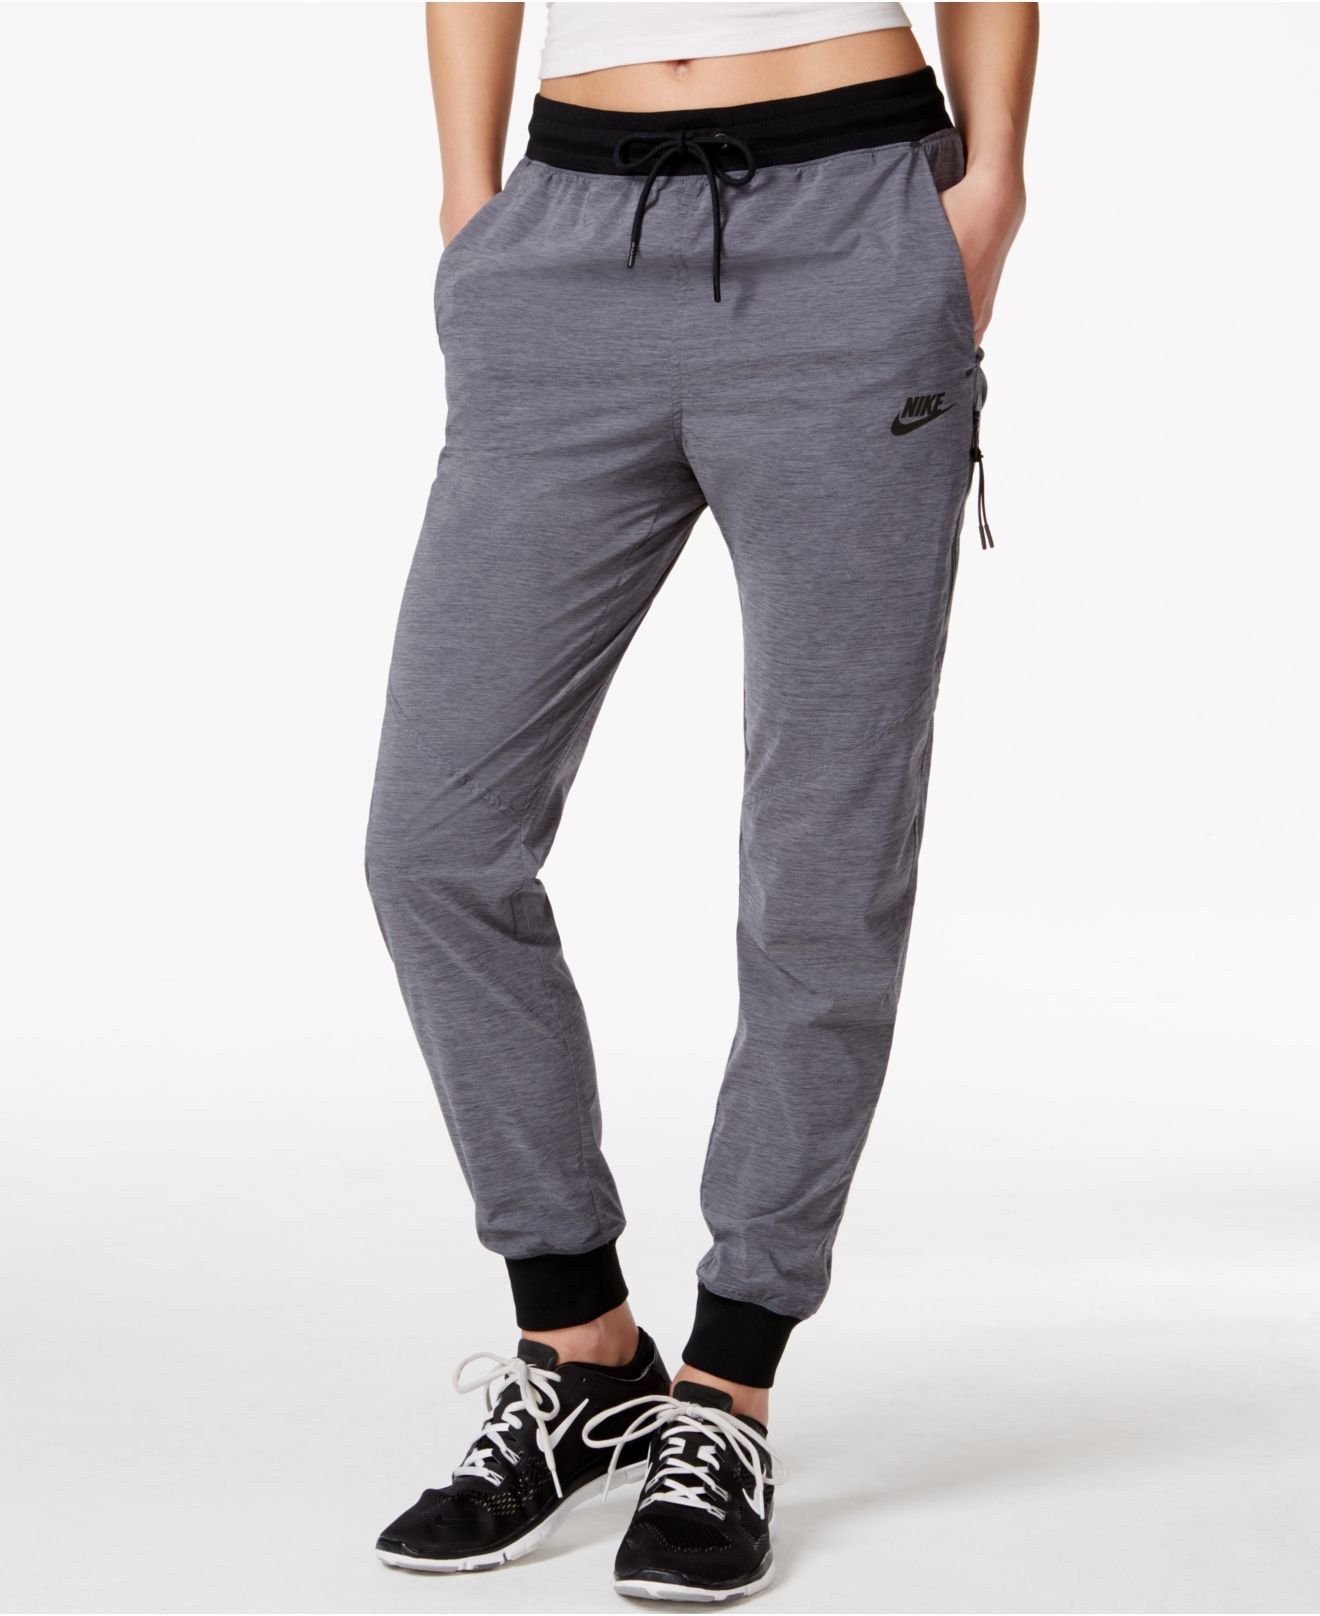 Lastest Nike Womens United Woven Pants Give You Great Allweather Protection And Warmth With An Elastic And Drawstring Waist Band For Comfort The Zipup Ankle Cuffs Allow You To Pull On These Pants While Wearing Soccer Cleats Or Shoes Not